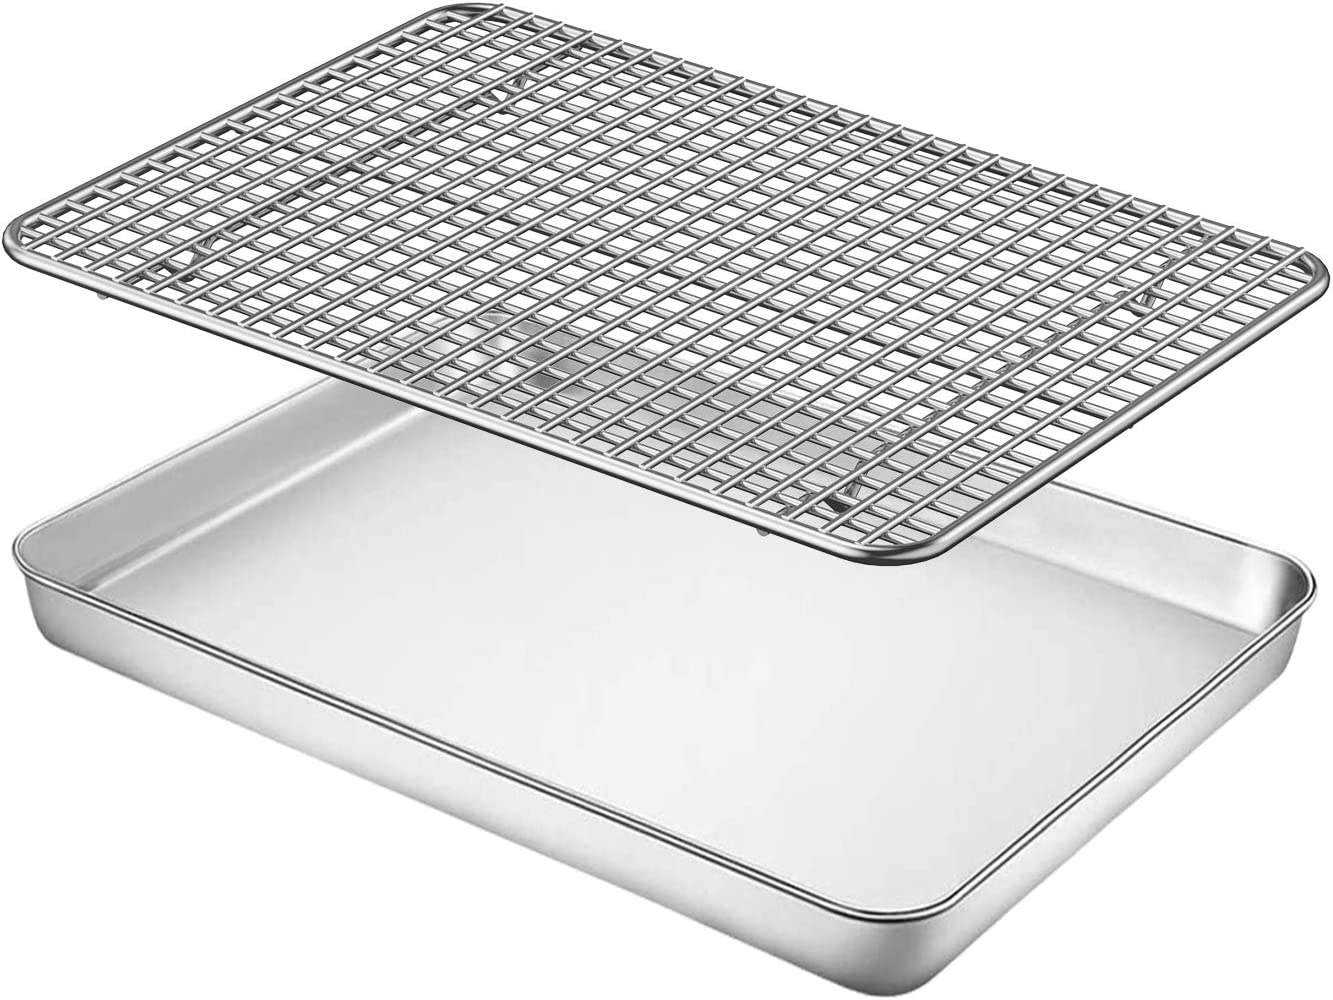 Baking Sheet with Rack Set, Fungun 10 X 8 X 1 Stainless Steel Cookie Sheet Baking Pan Oven Tray with Cooling Rack, Non Toxic & Heavy Duty & Easy Clean